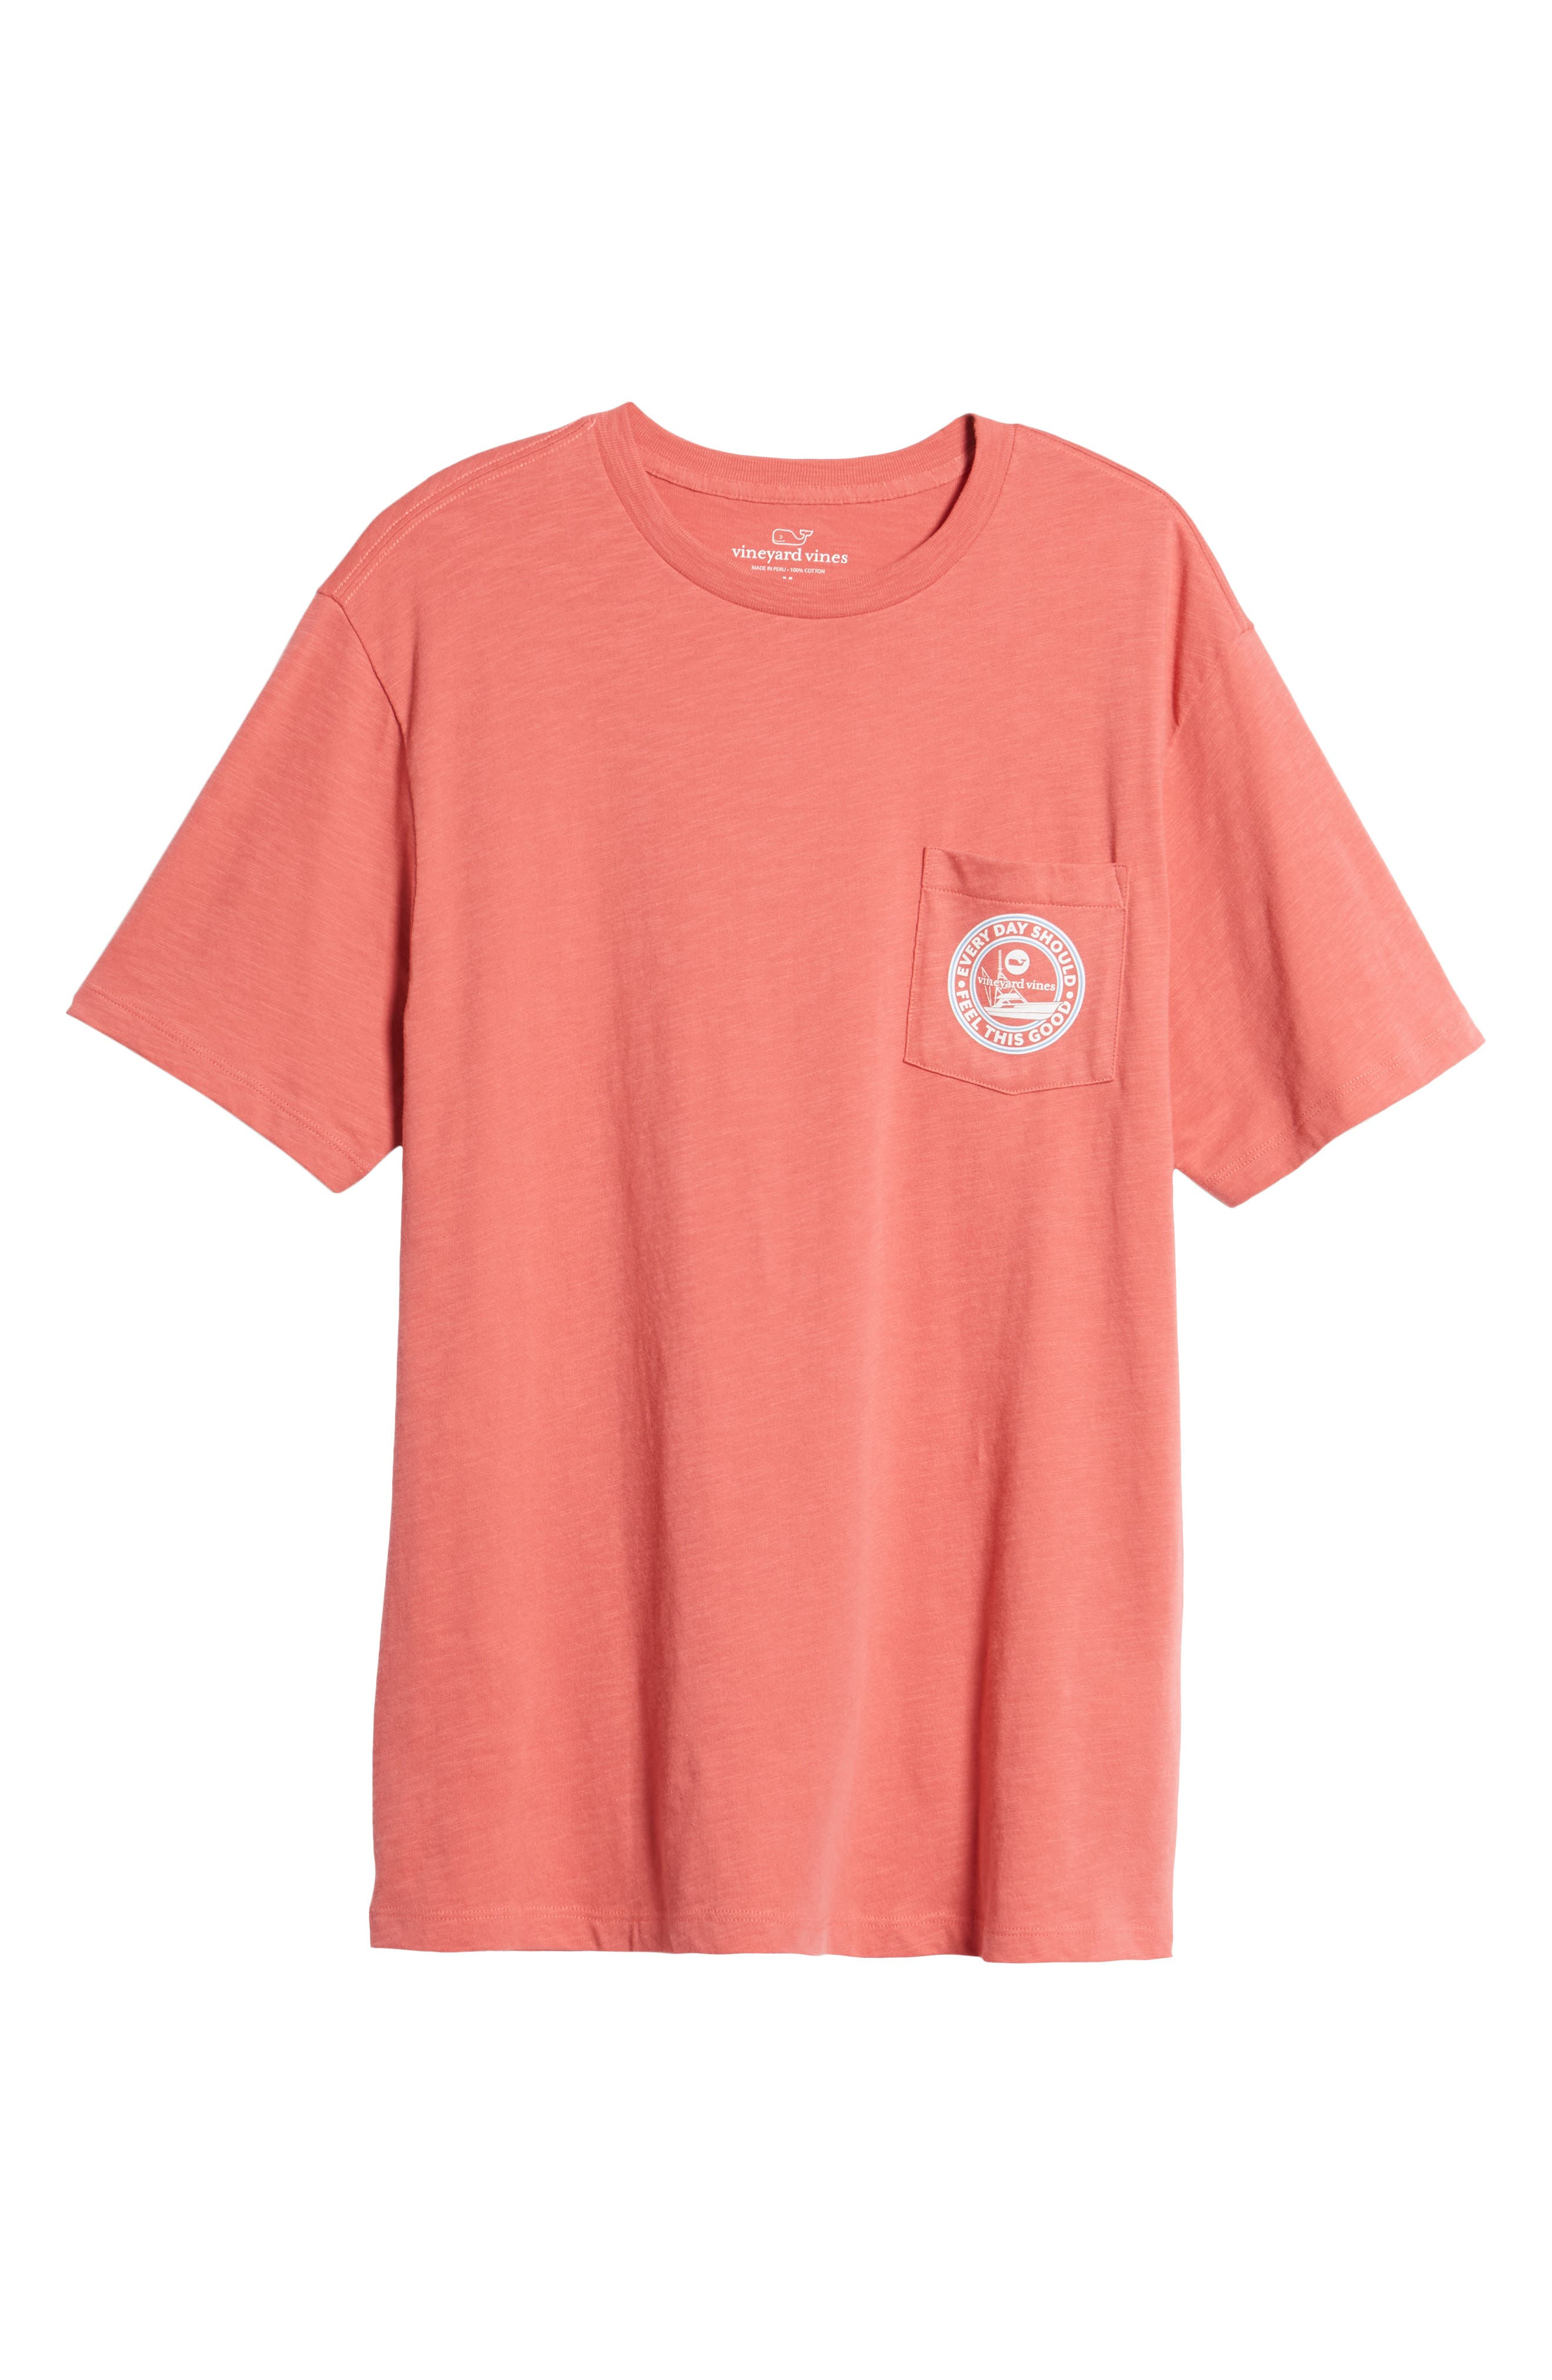 Every Day Should Feel This Good Pocket T-Shirt,                             Alternate thumbnail 6, color,                             Jetty Red